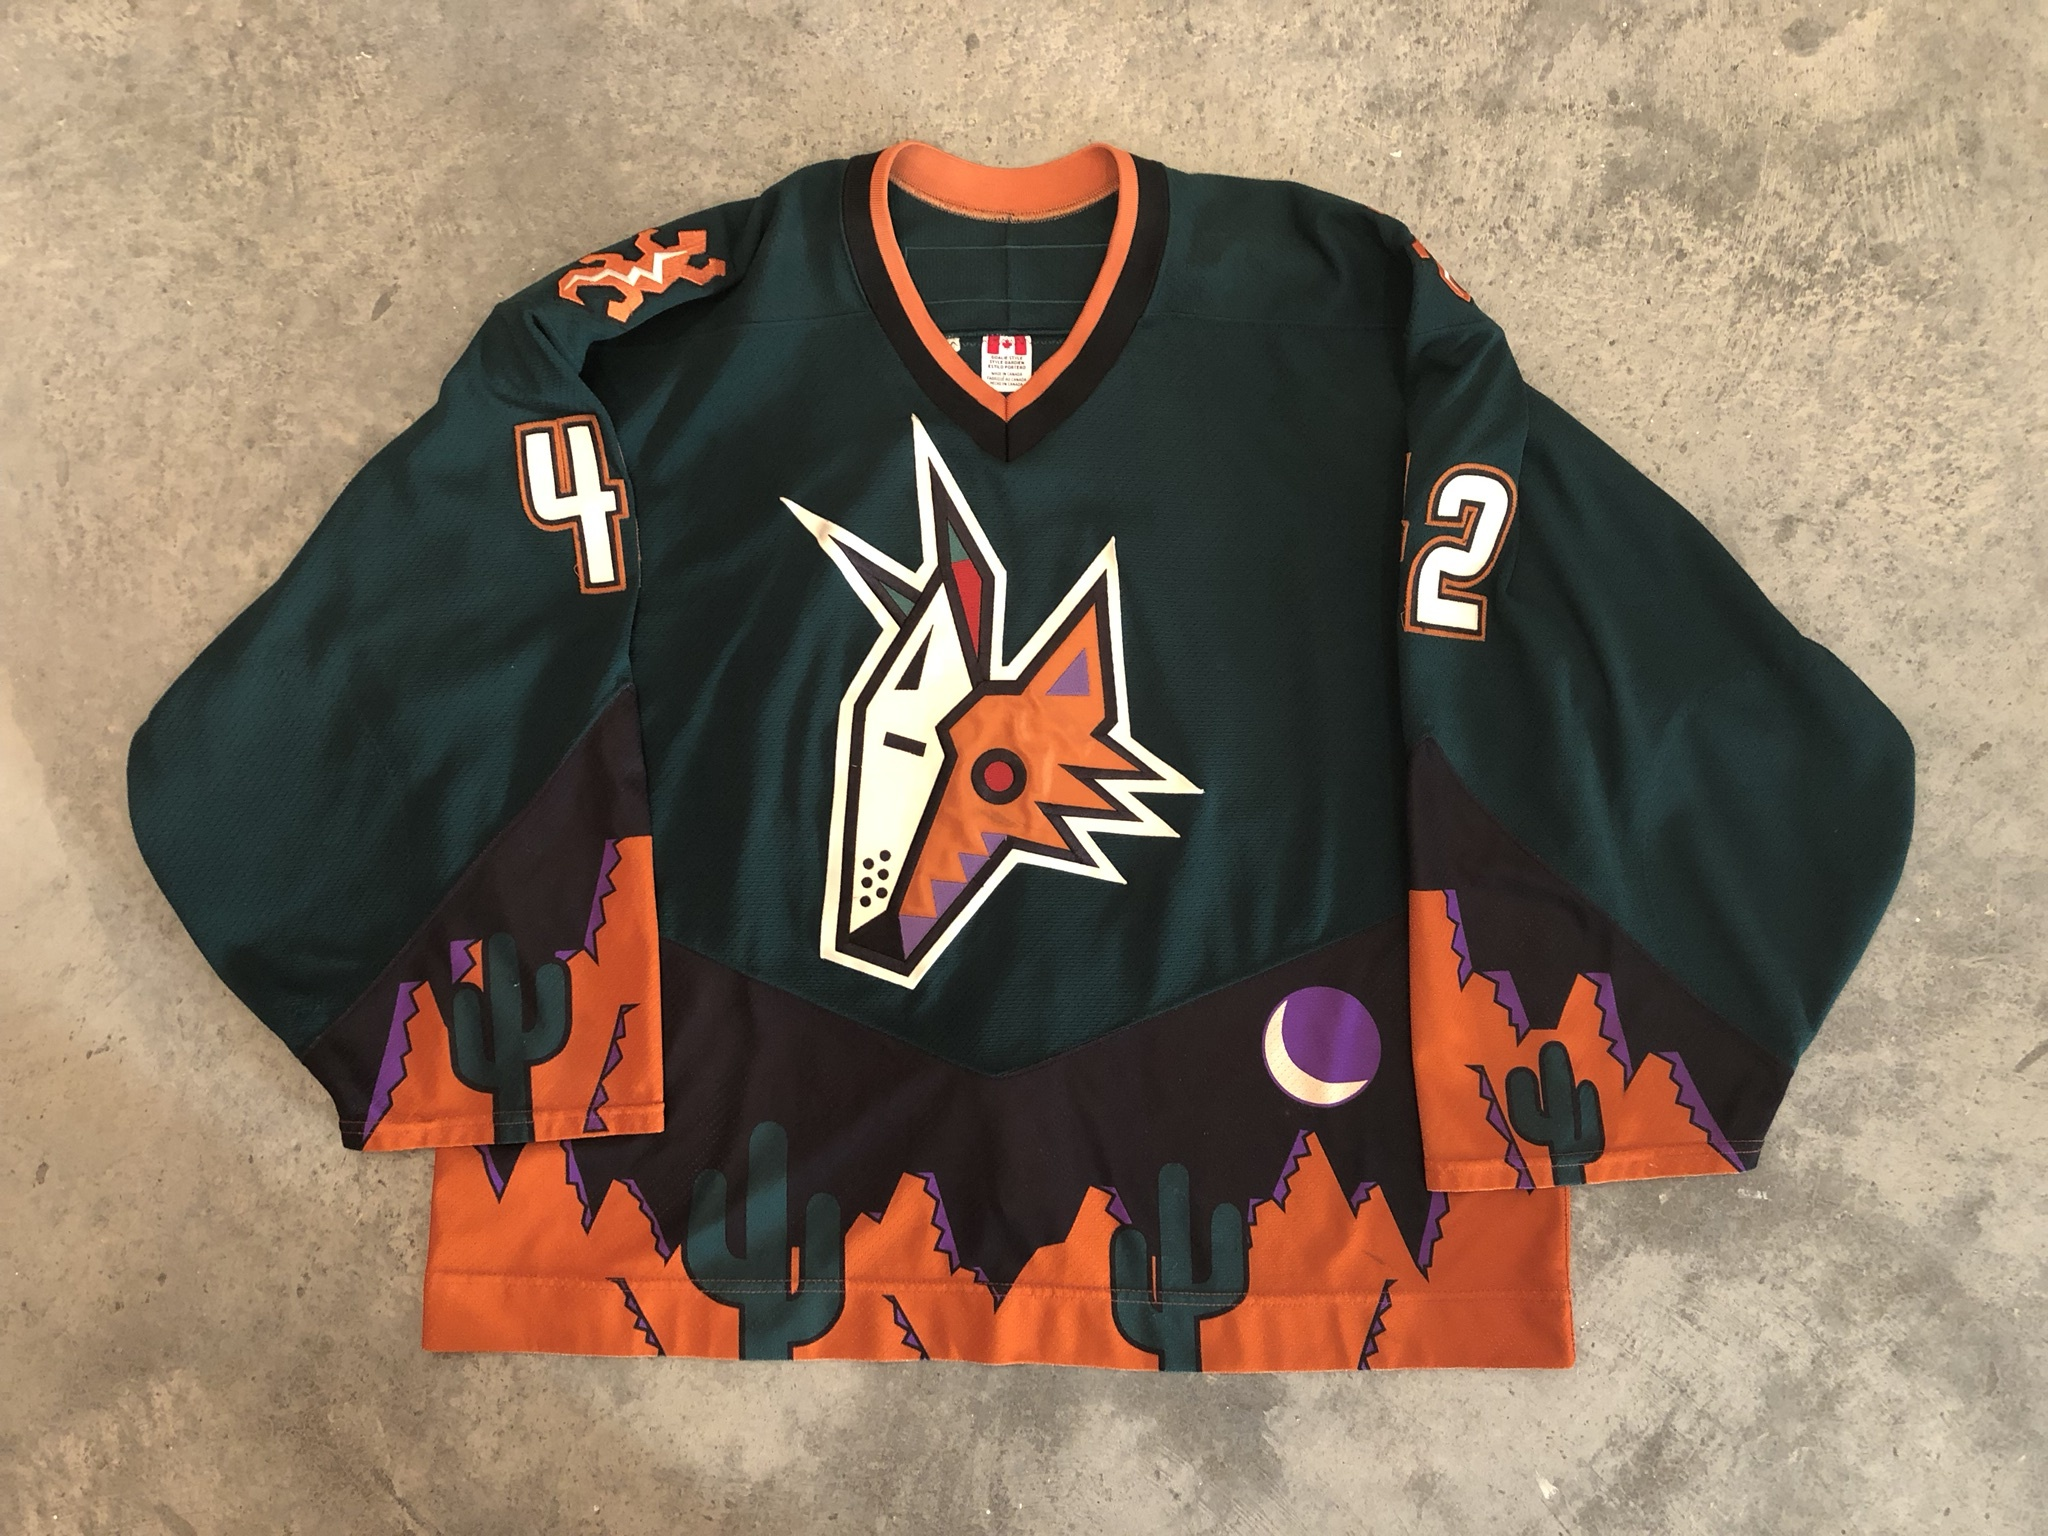 2000-01 Robert Esche Pheonix Coyotes Alternate Game Worn Jersey